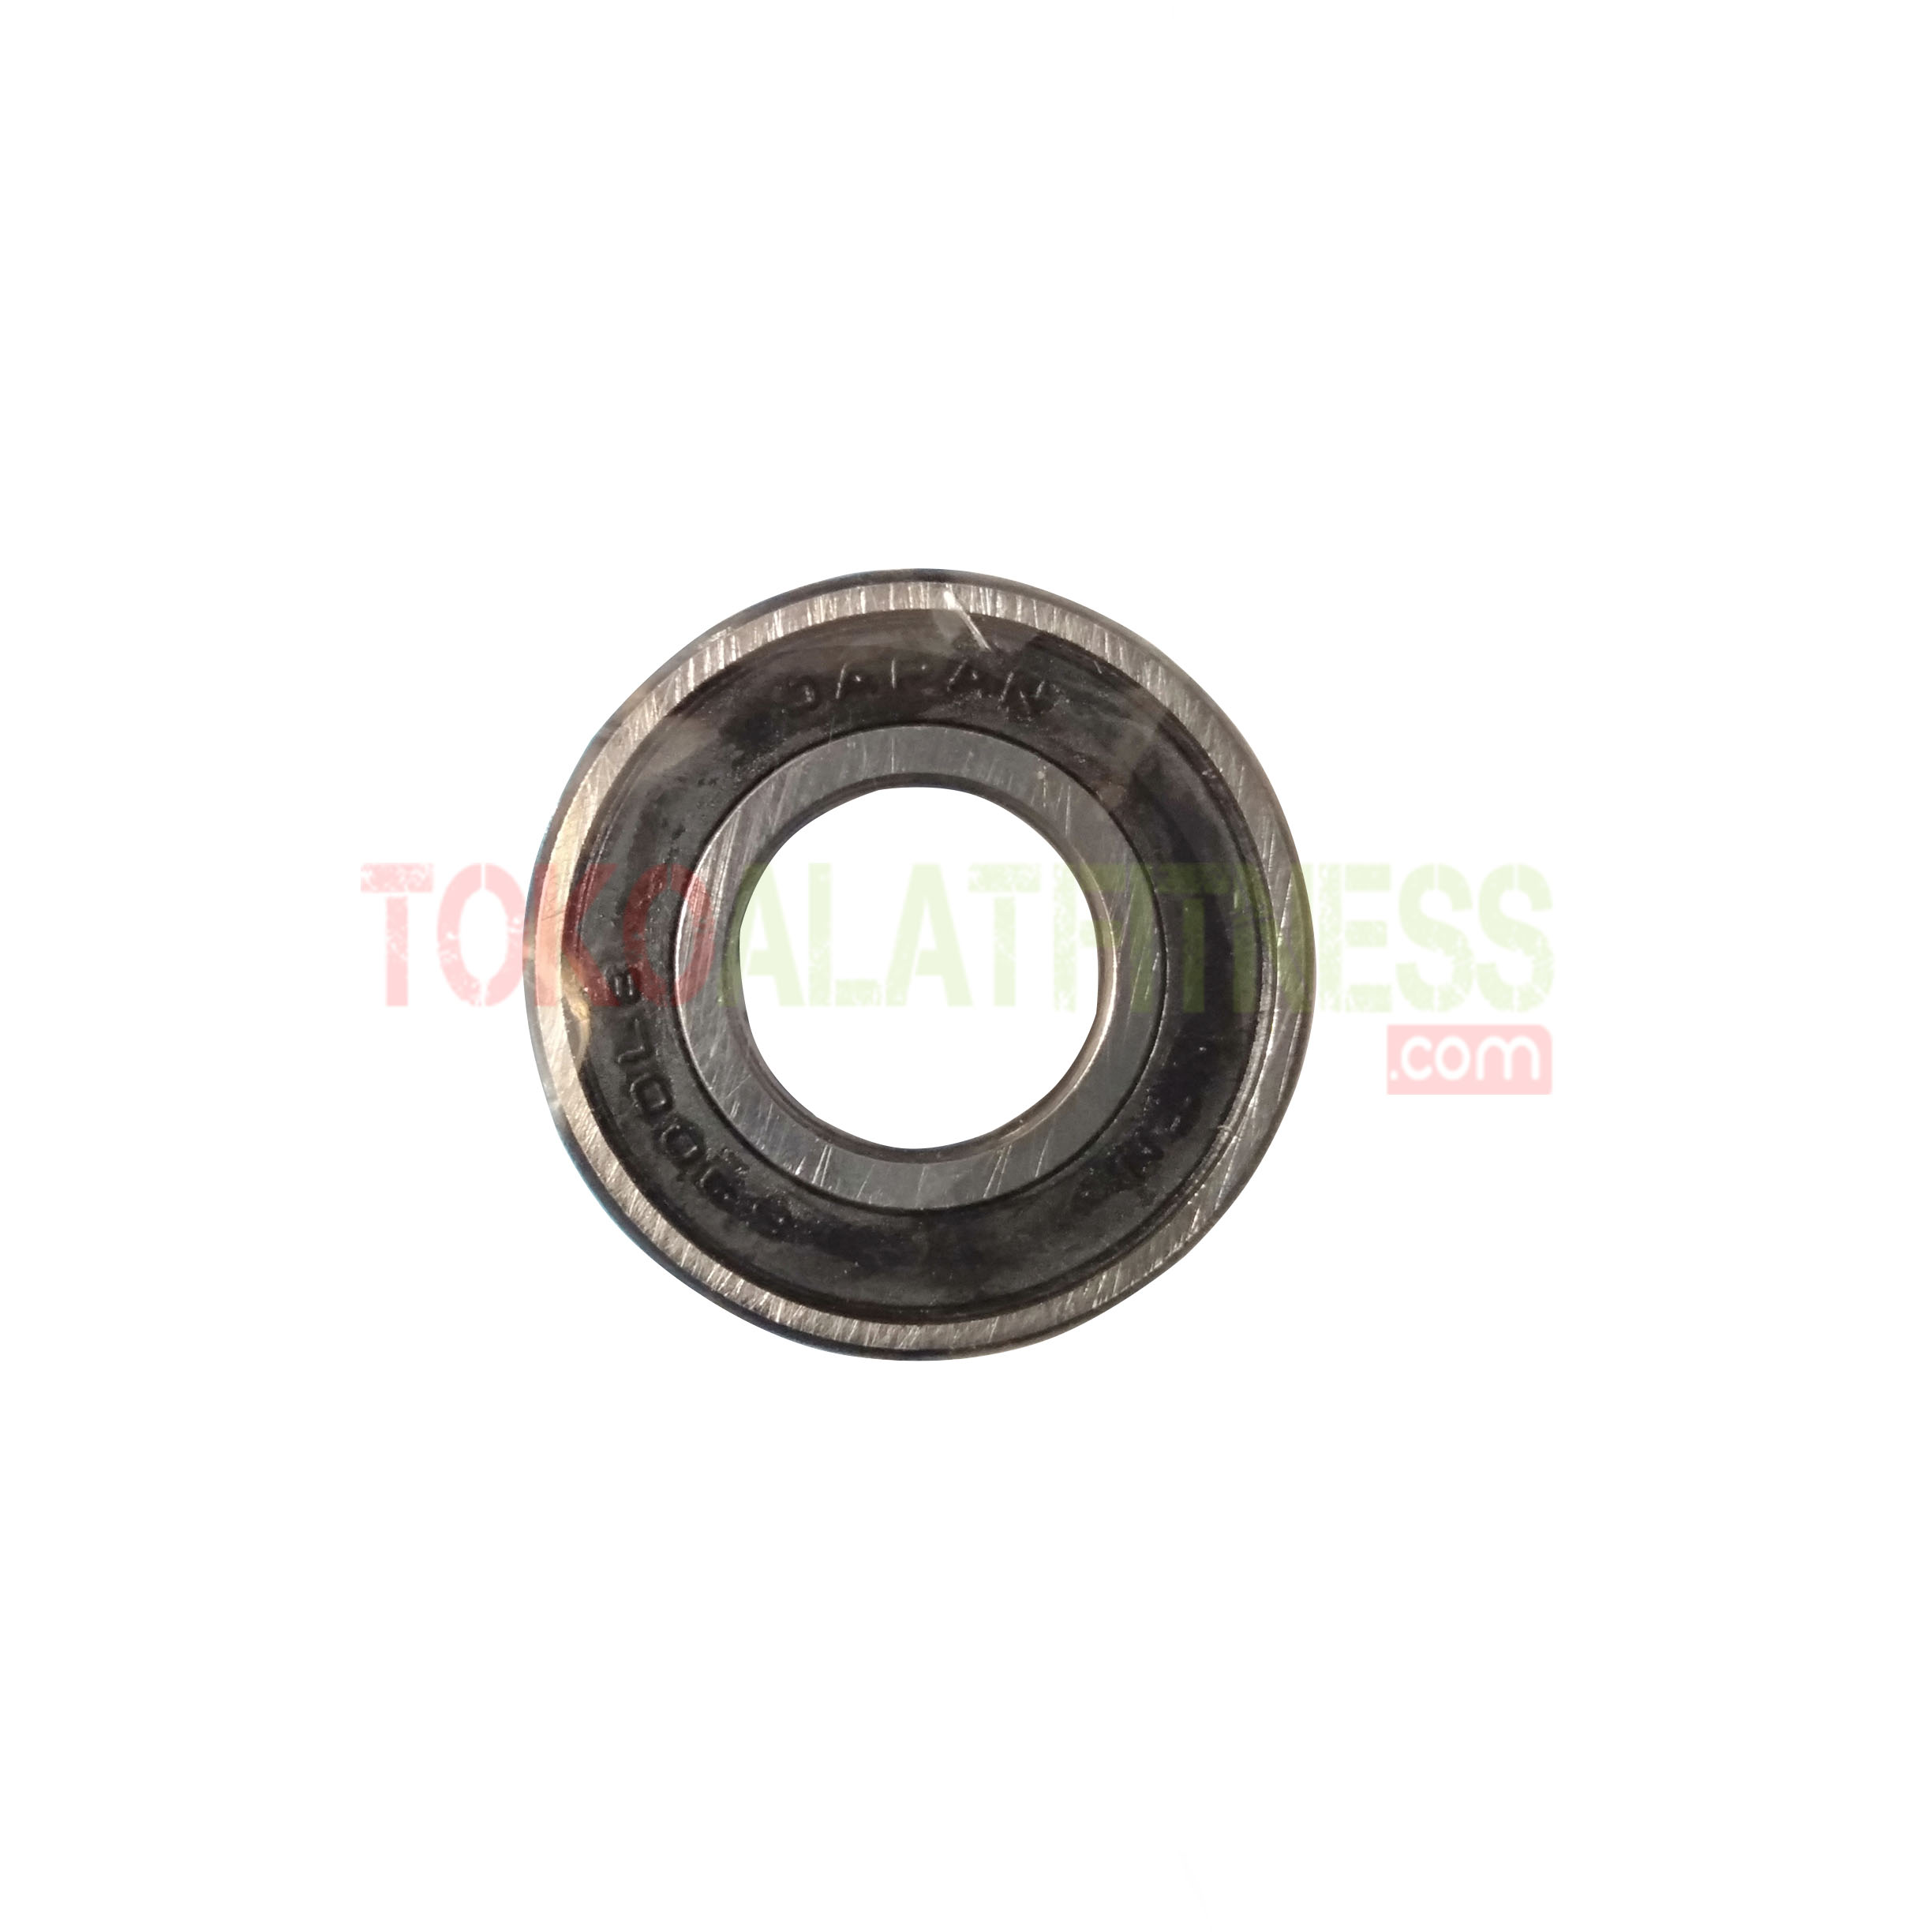 BEARING 6 MM - Sparepart Alat Fitness Bearing 6mm NTN japan For Pulley